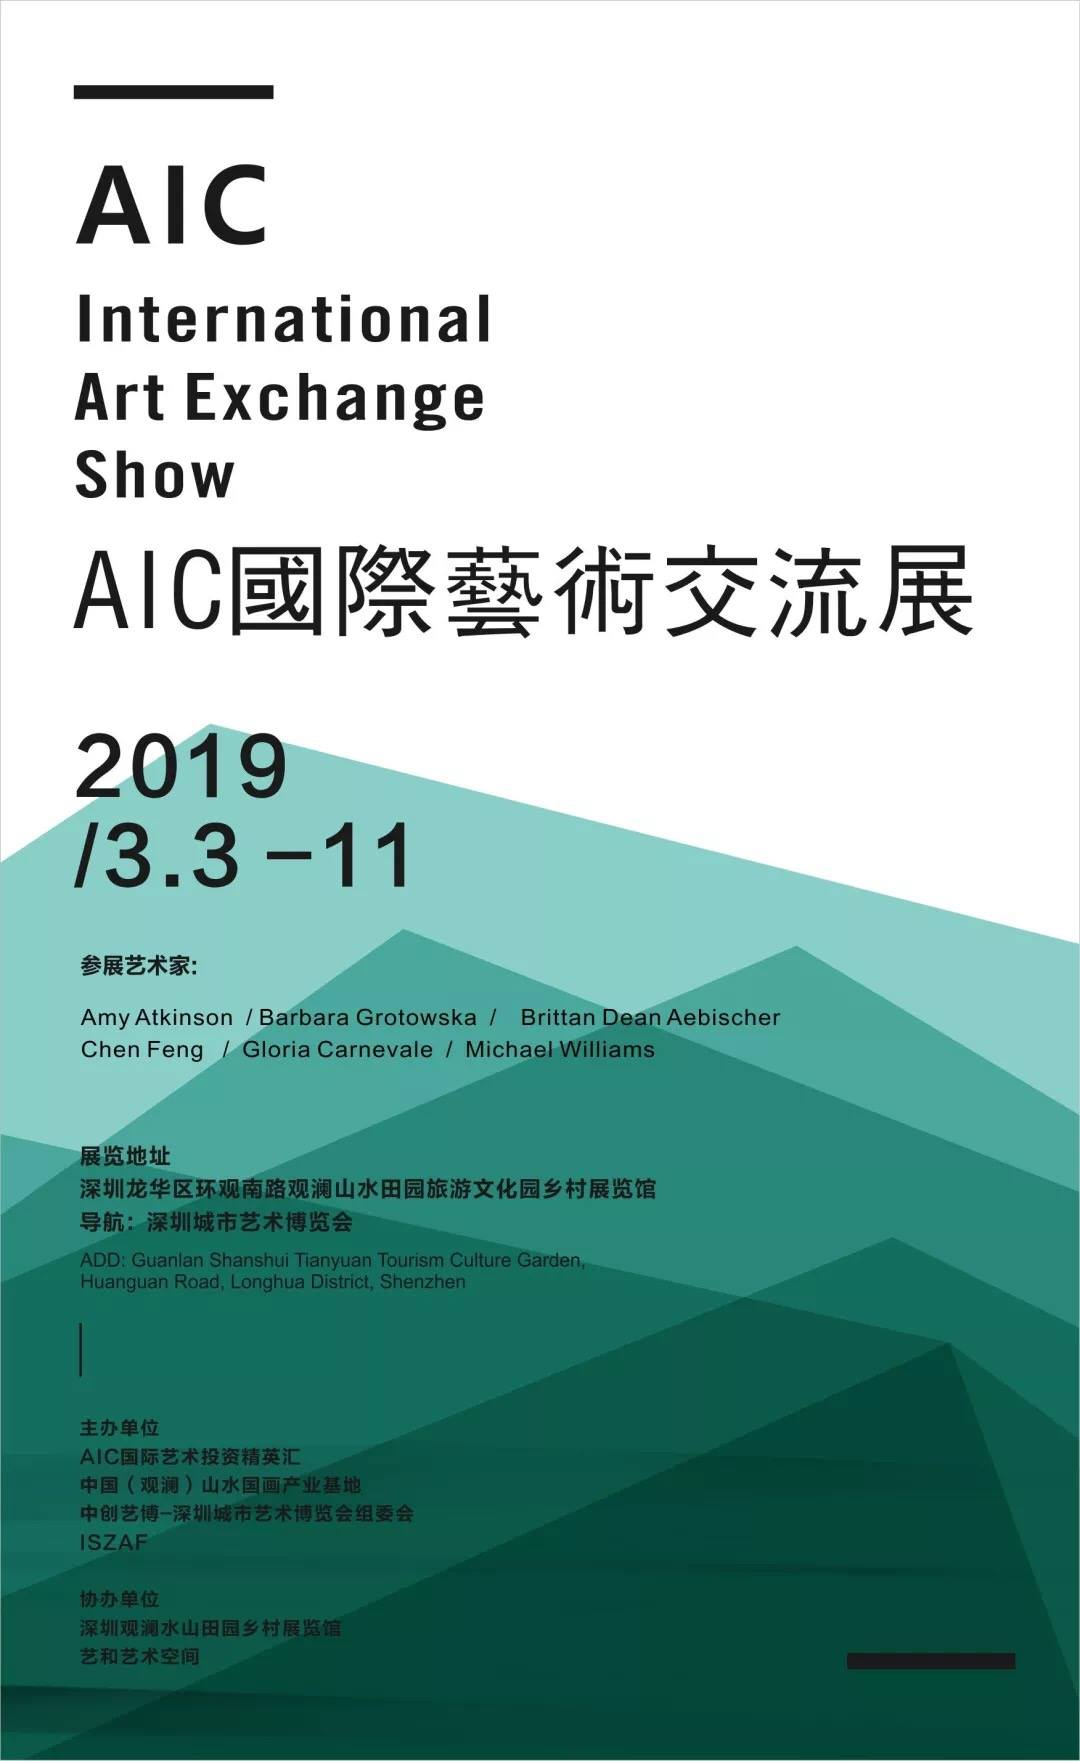 AIC International Art Exchange Show Poster, March, 2019